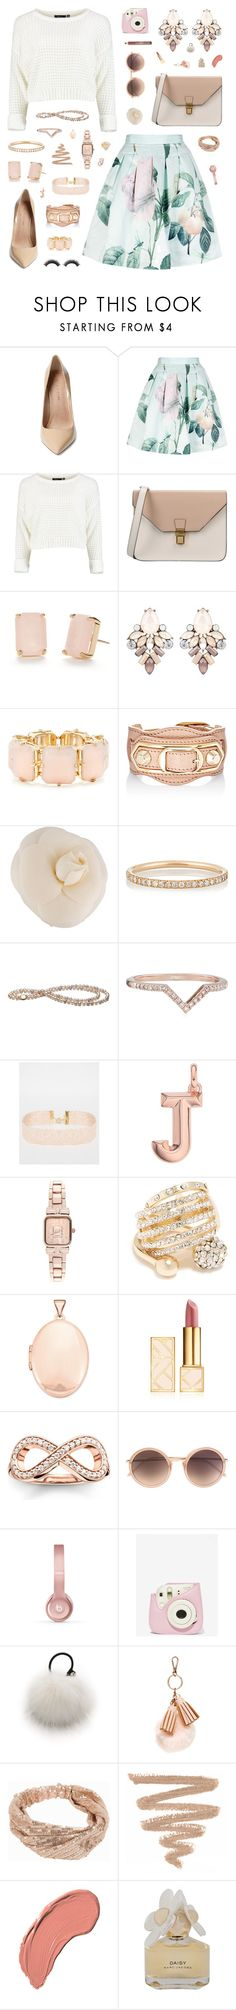 """""""Hello, babe."""" by belenloperfido ❤ liked on Polyvore featuring Maiden Lane, Ted Baker, 8, Kate Spade, R.J. Graziano, Balenciaga, Chanel, Ileana Makri, ASOS and Monica Vinader"""